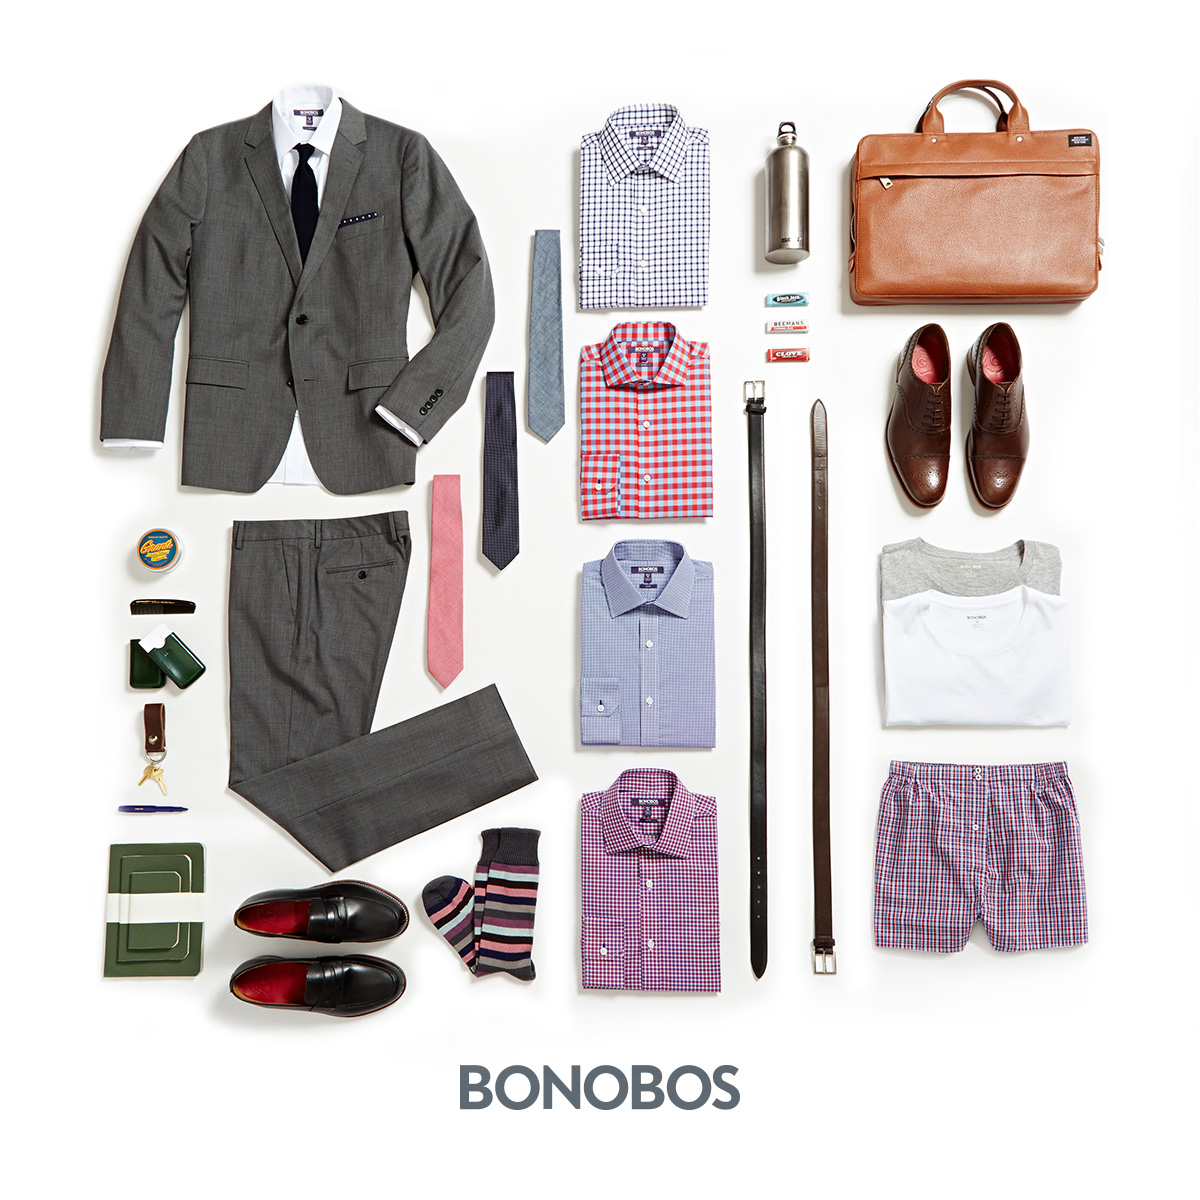 Wear To Work Bonobos Giveaway